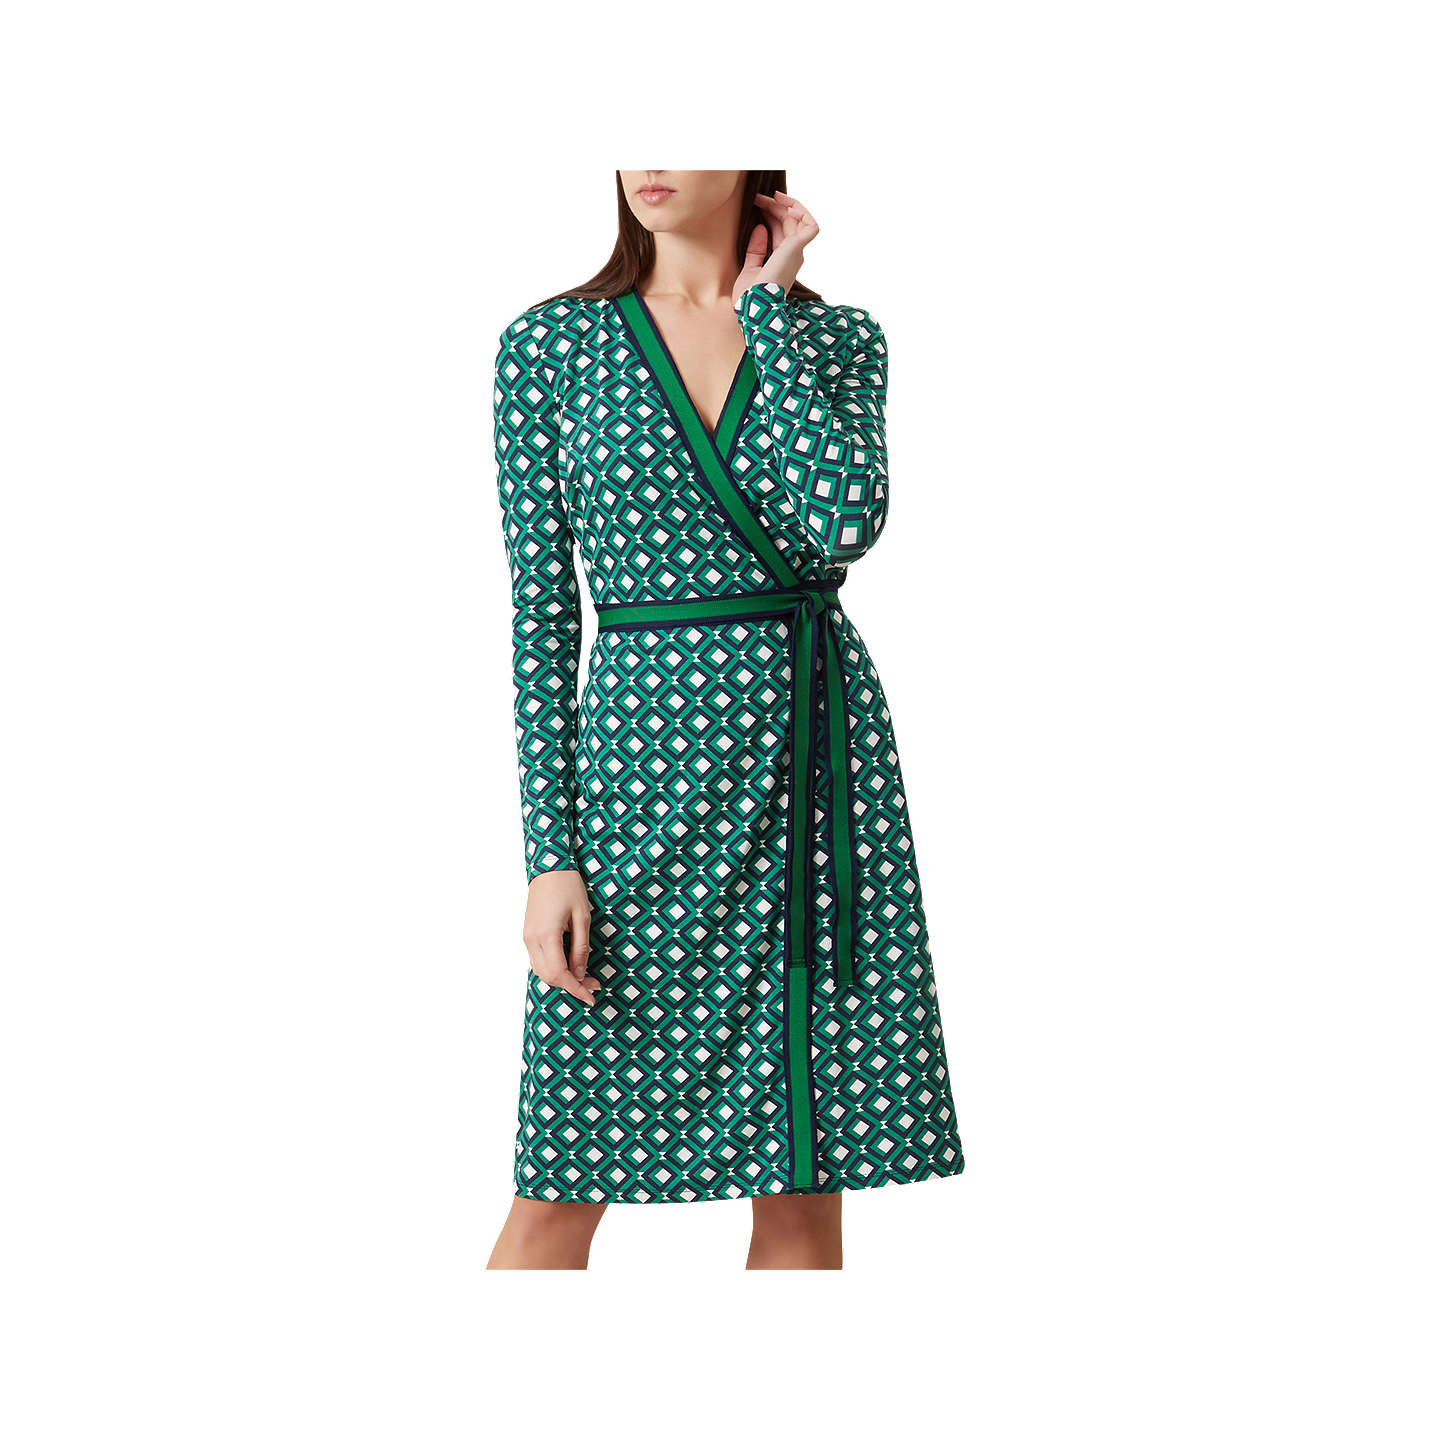 Hobbs Jasmine Wrap Dress, Apple Green at John Lewis